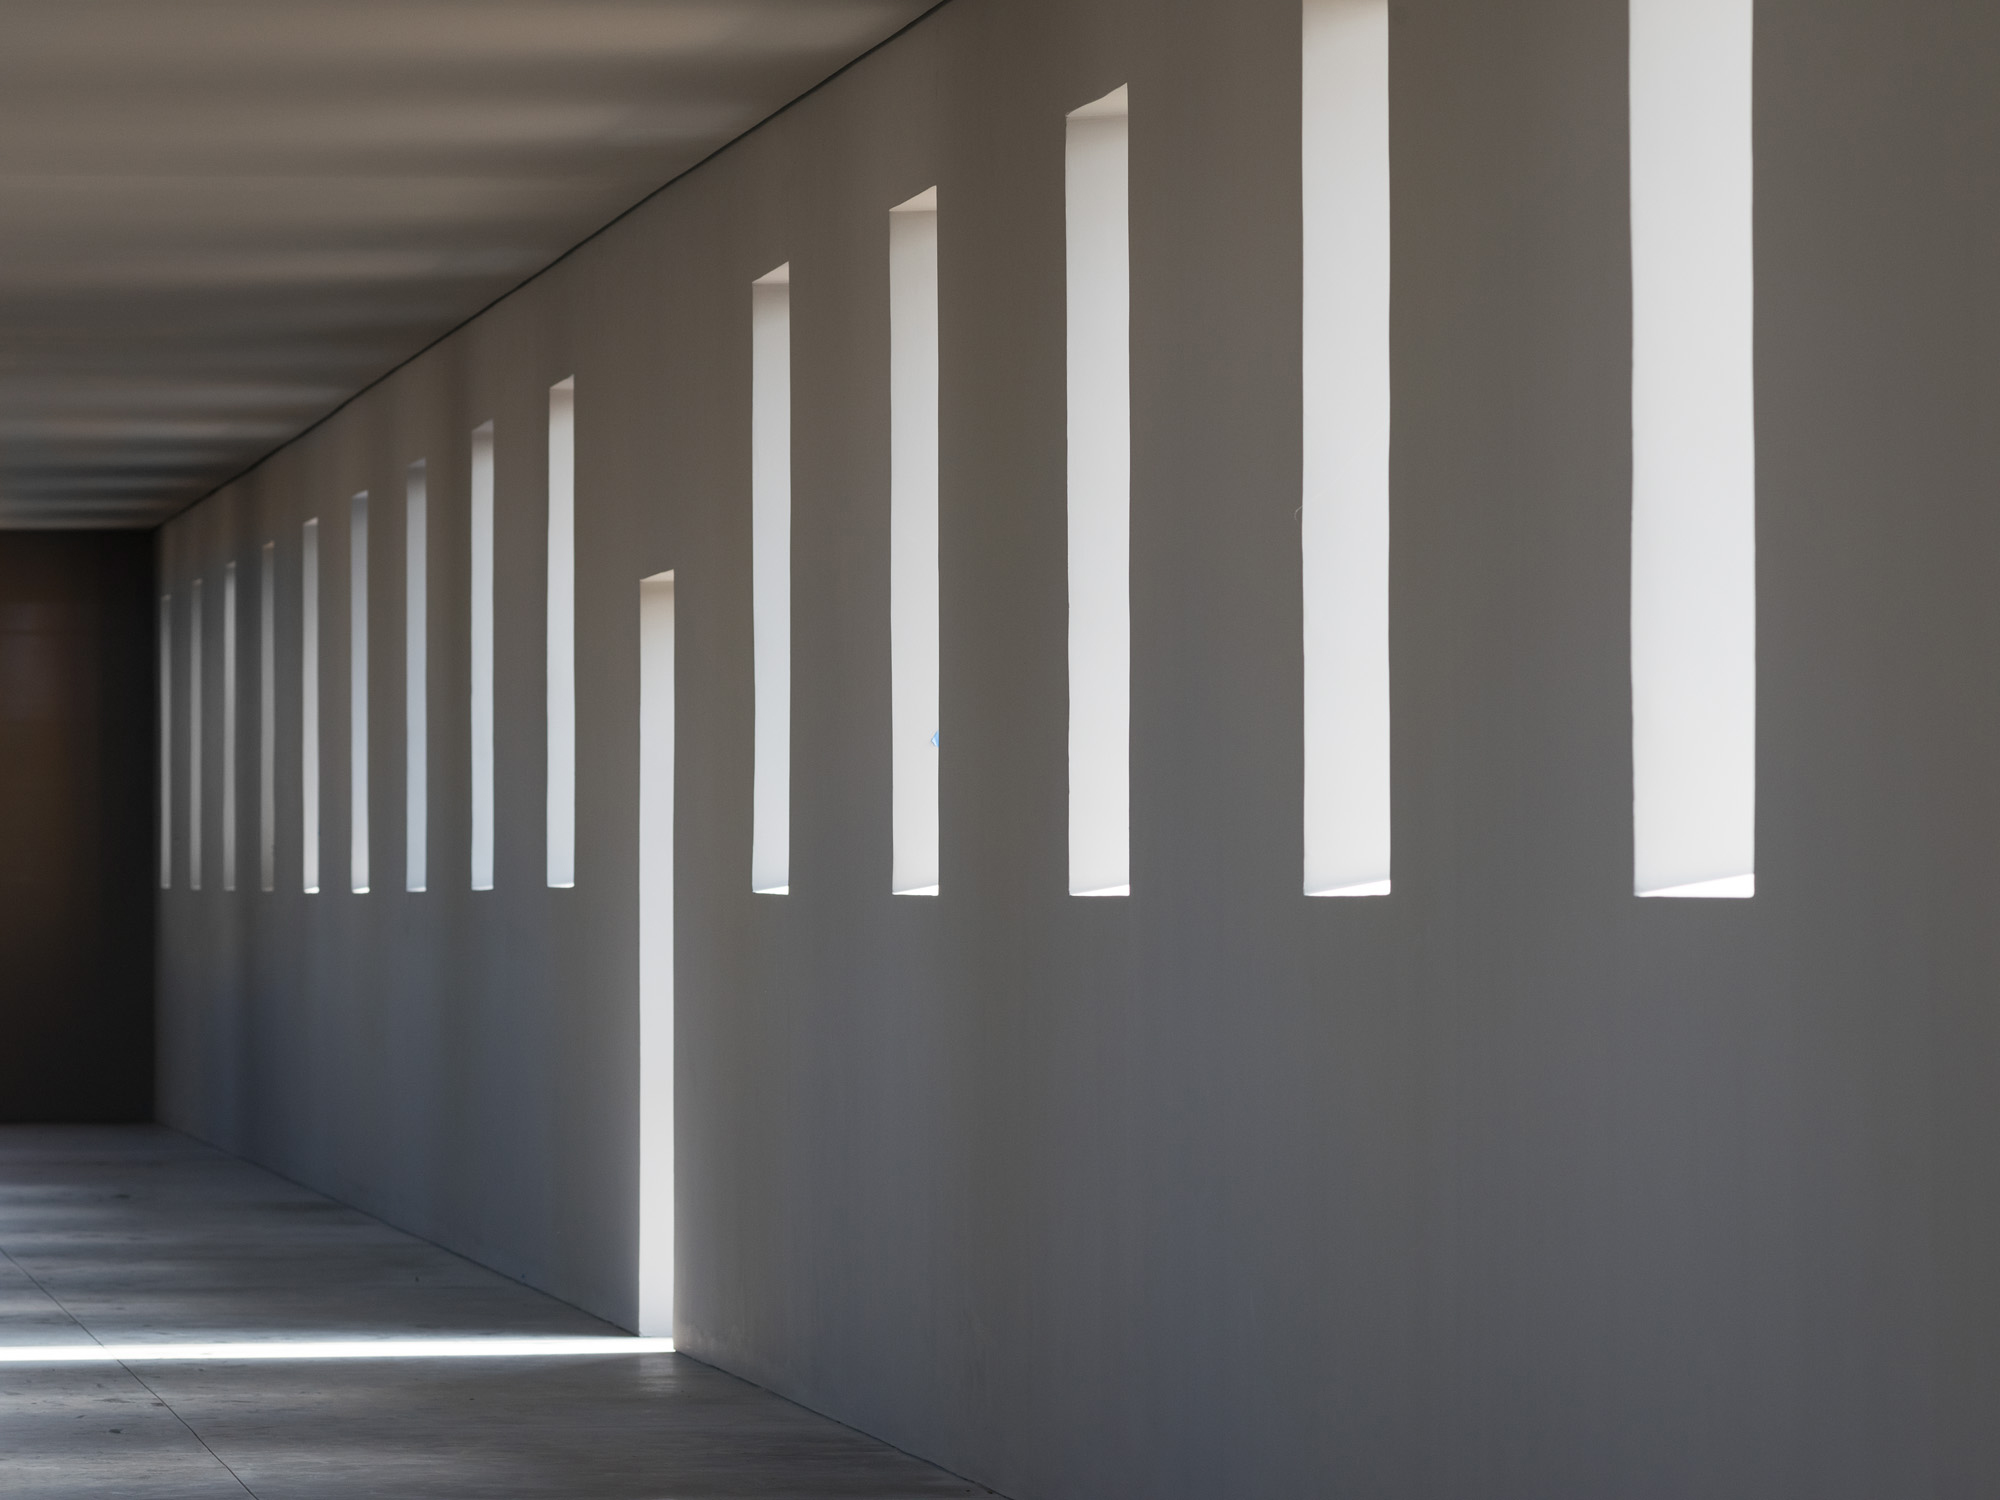 Robert Irwin, untitled (dawn to dusk), installation interior, 2016. ©2016 Philipp Scholz Rittermann, courtesy of the Chinati Foundation.